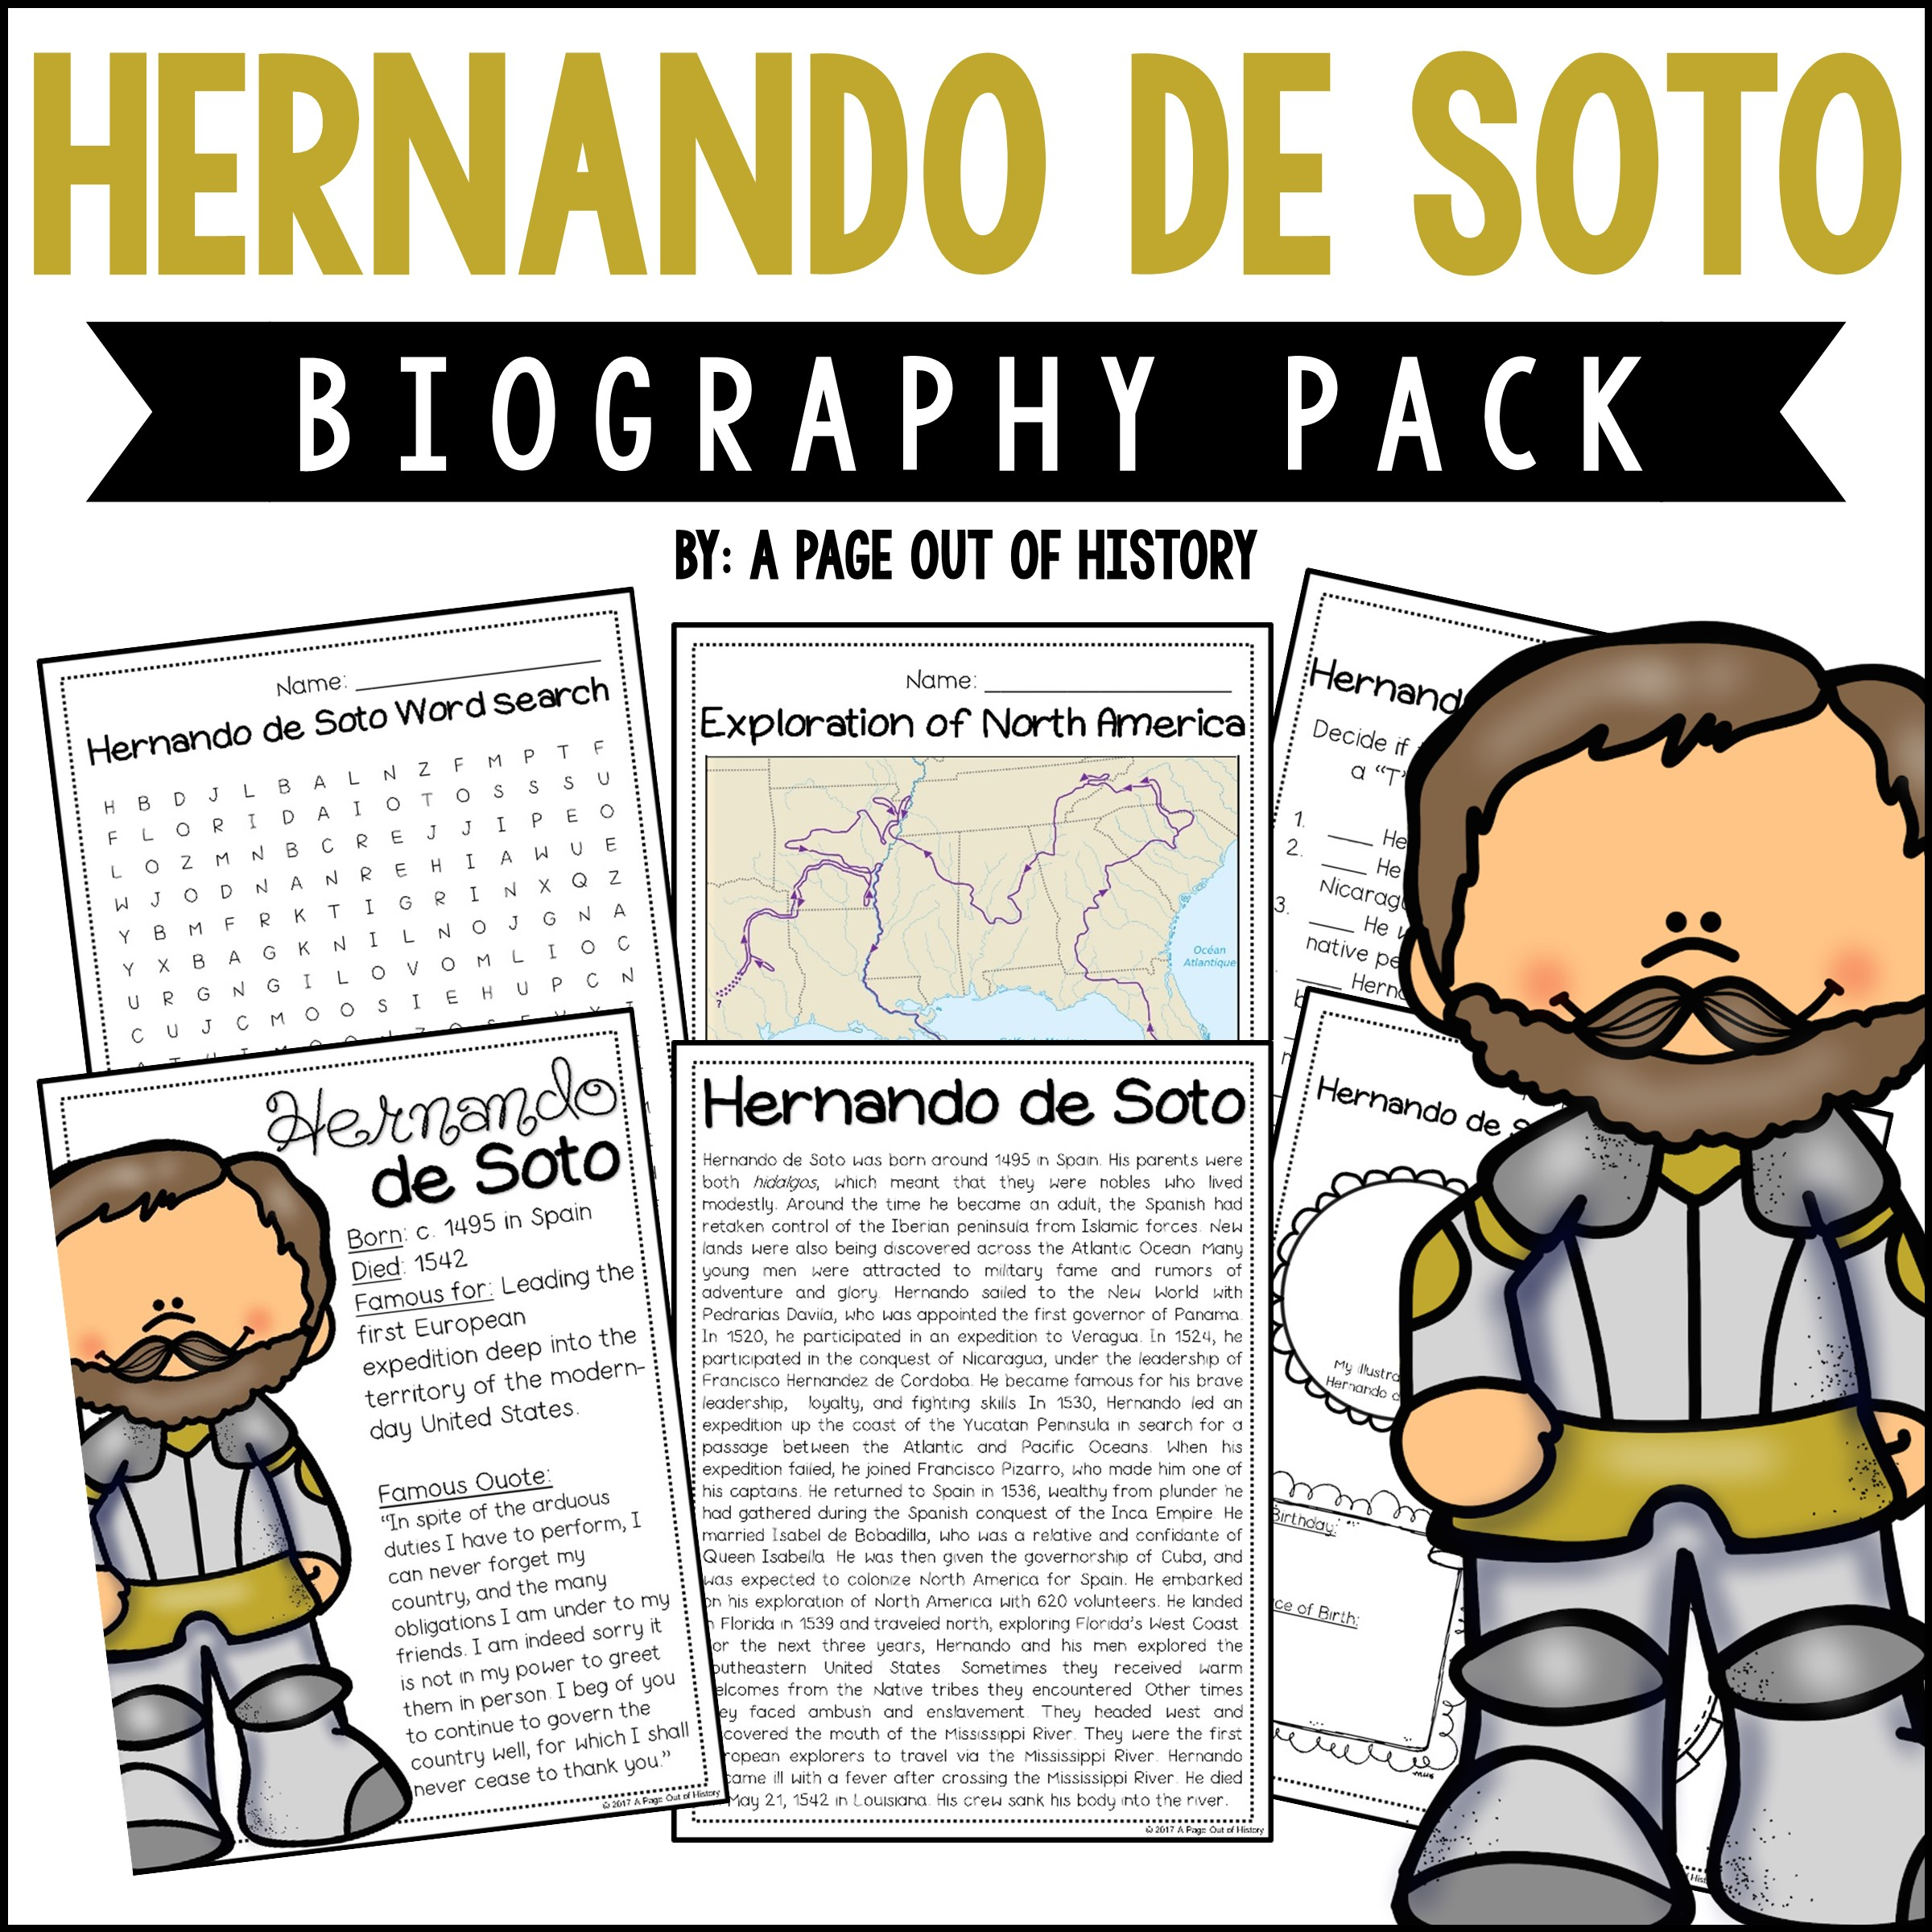 Hernando De Soto Biography Pack New World Explorers